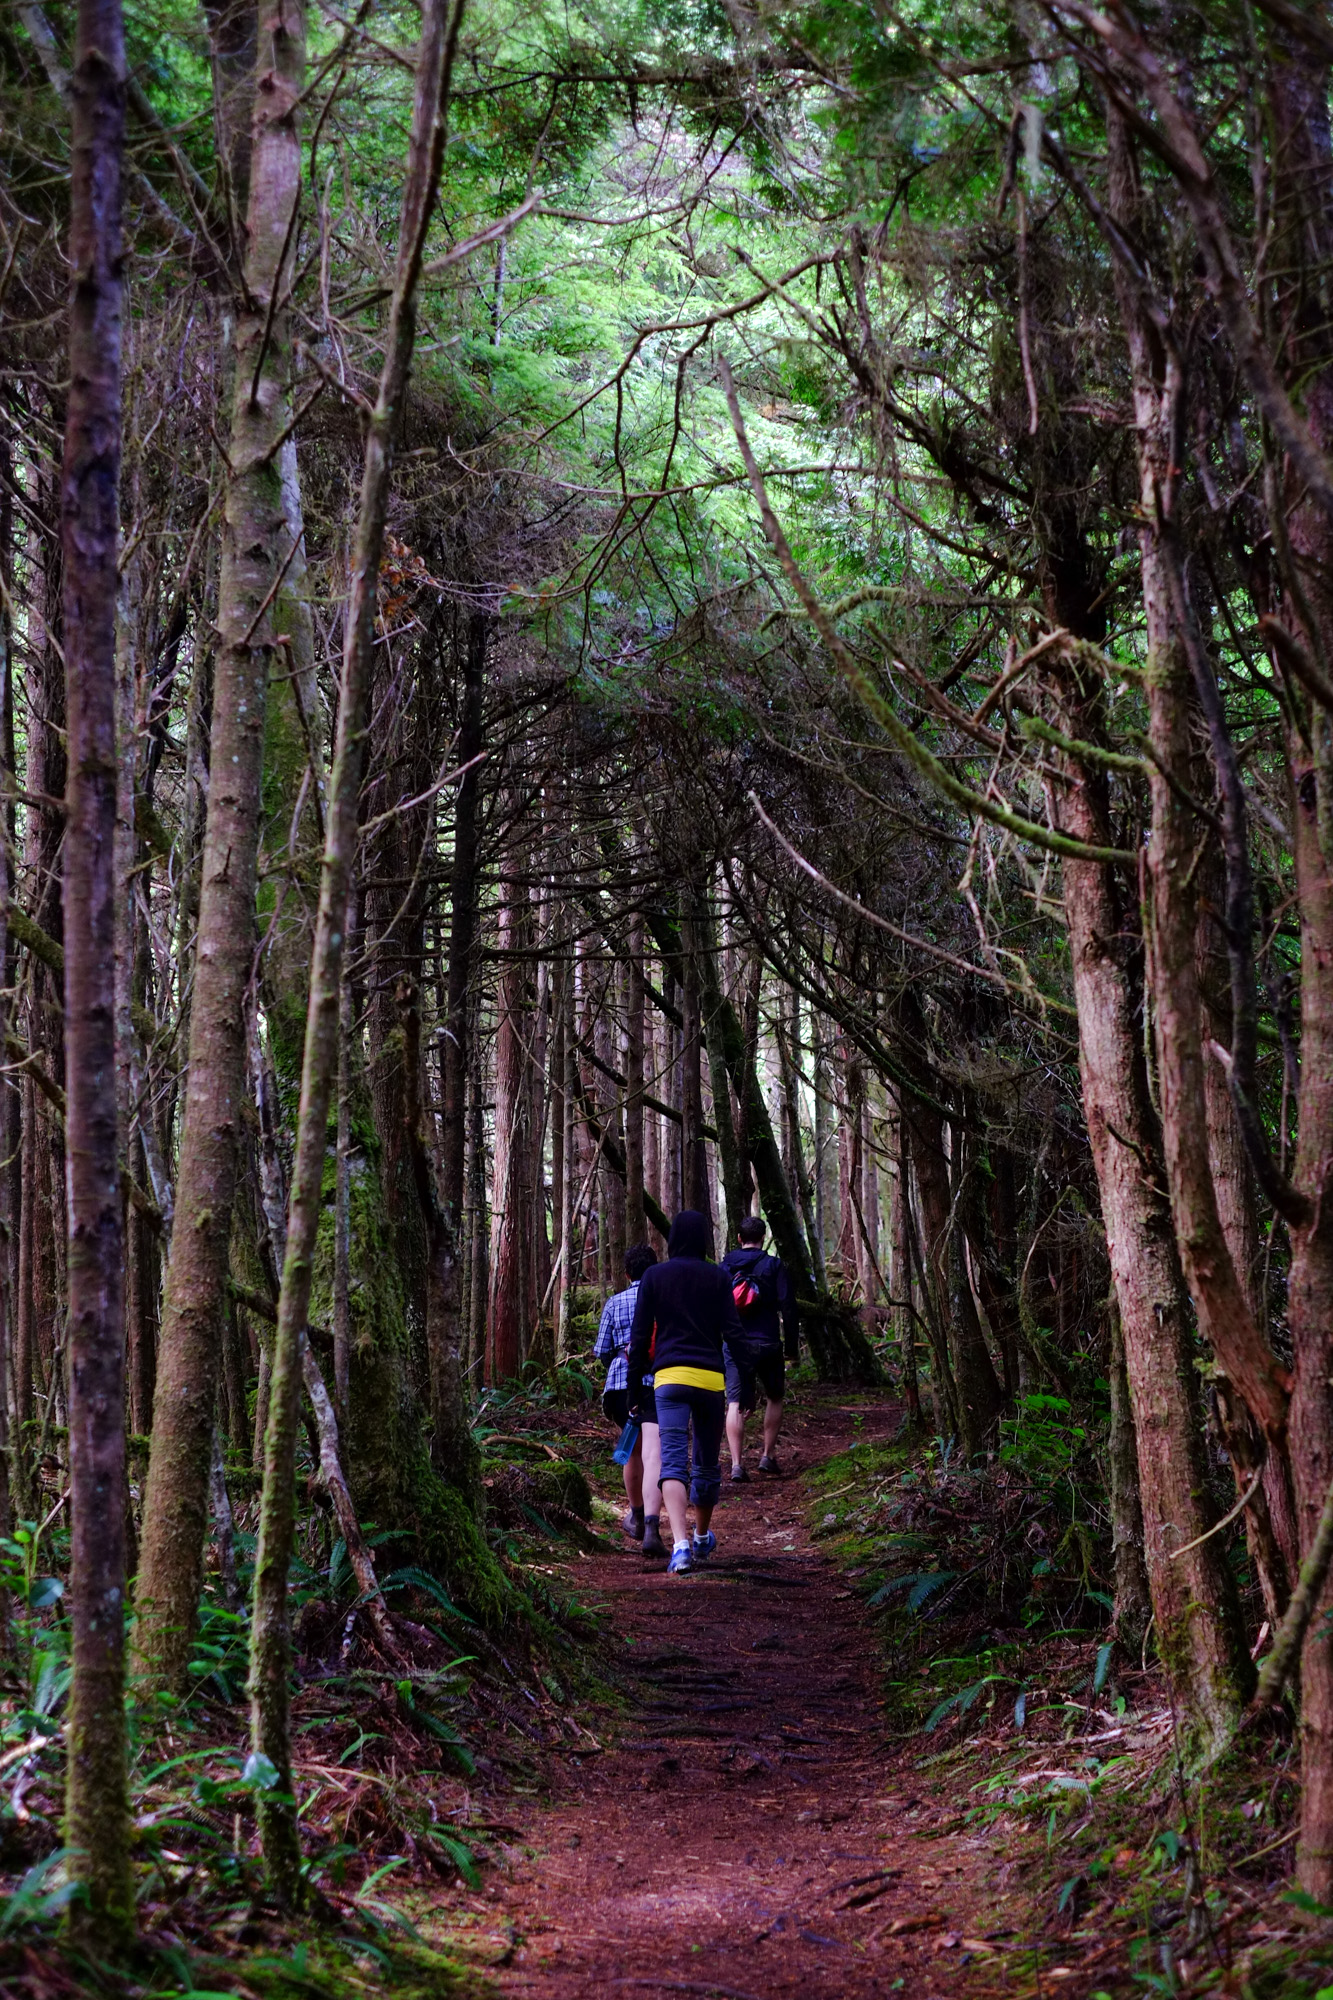 Hikers in the deep forest of the Cape Scott trail